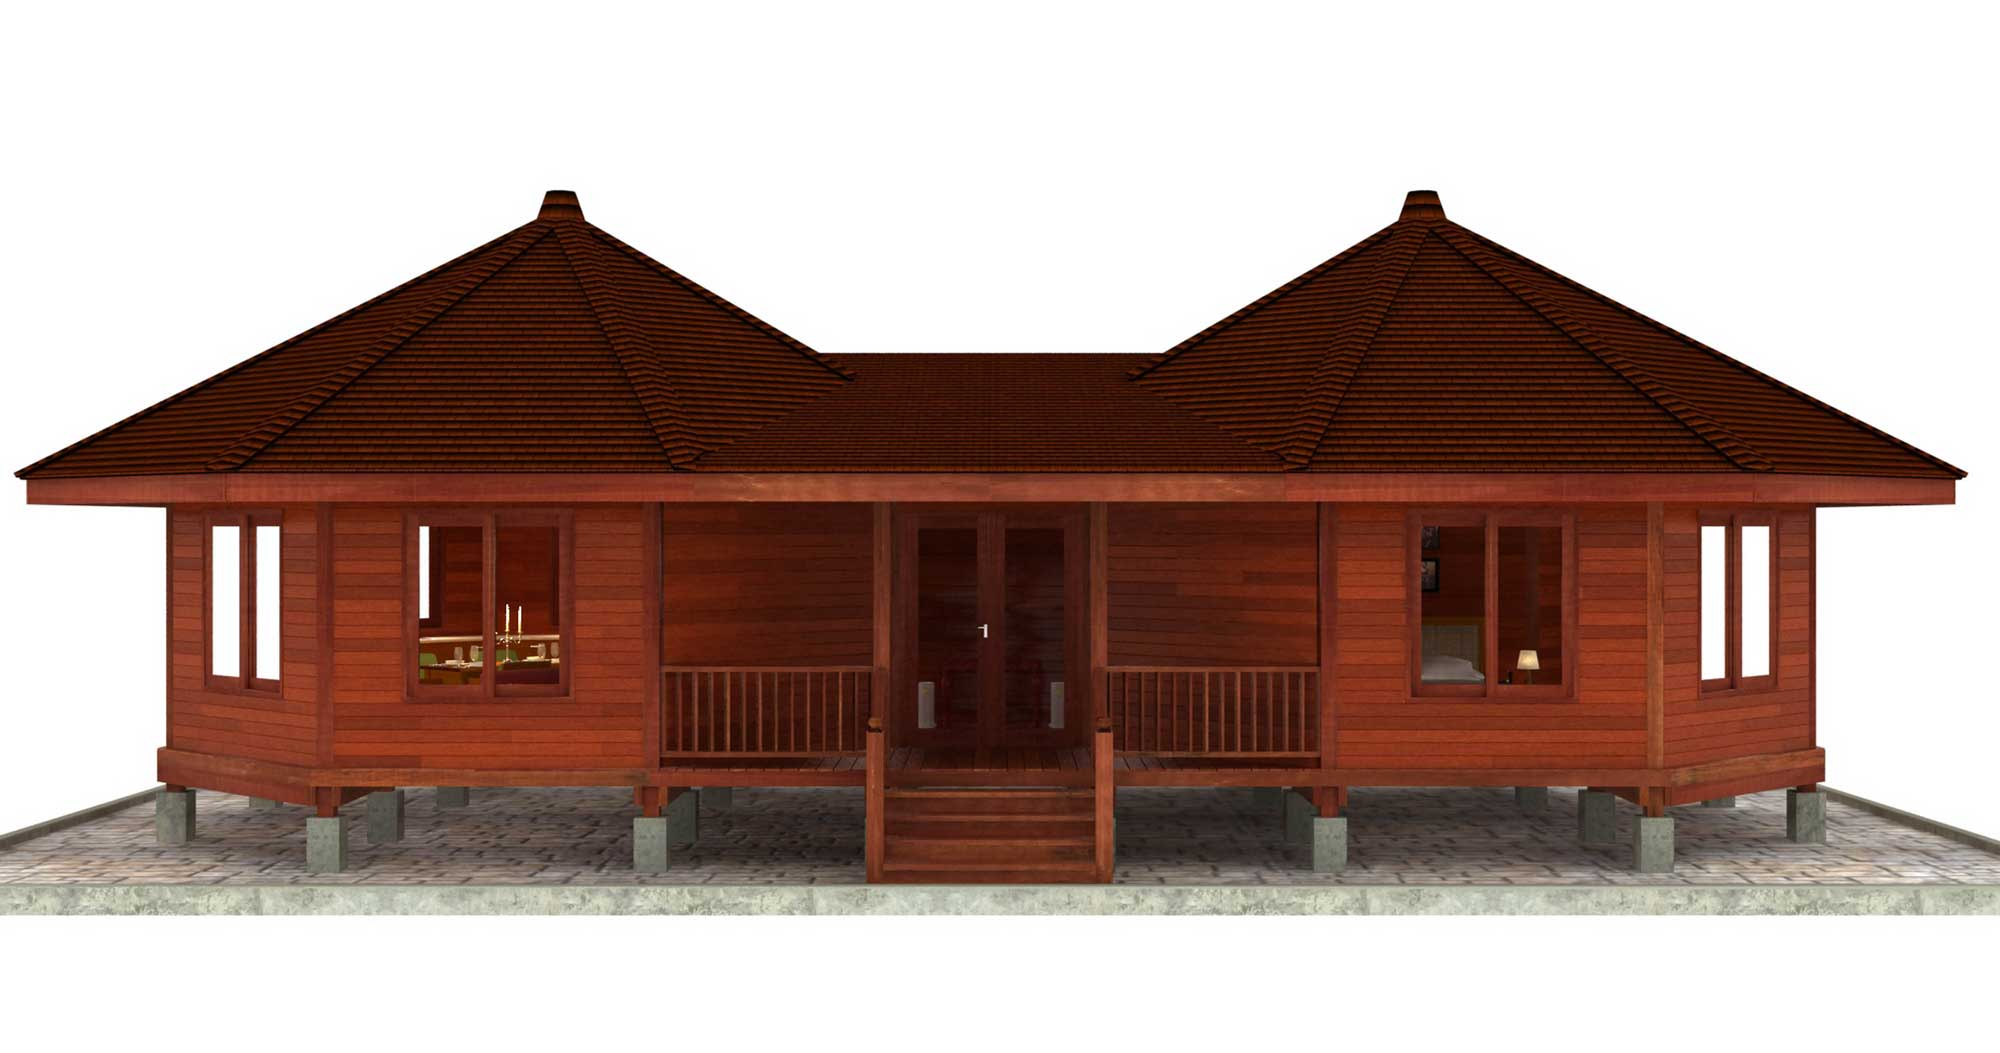 Octagonal House Designs  Images House Plans And Home Designs Free  Blog Archive